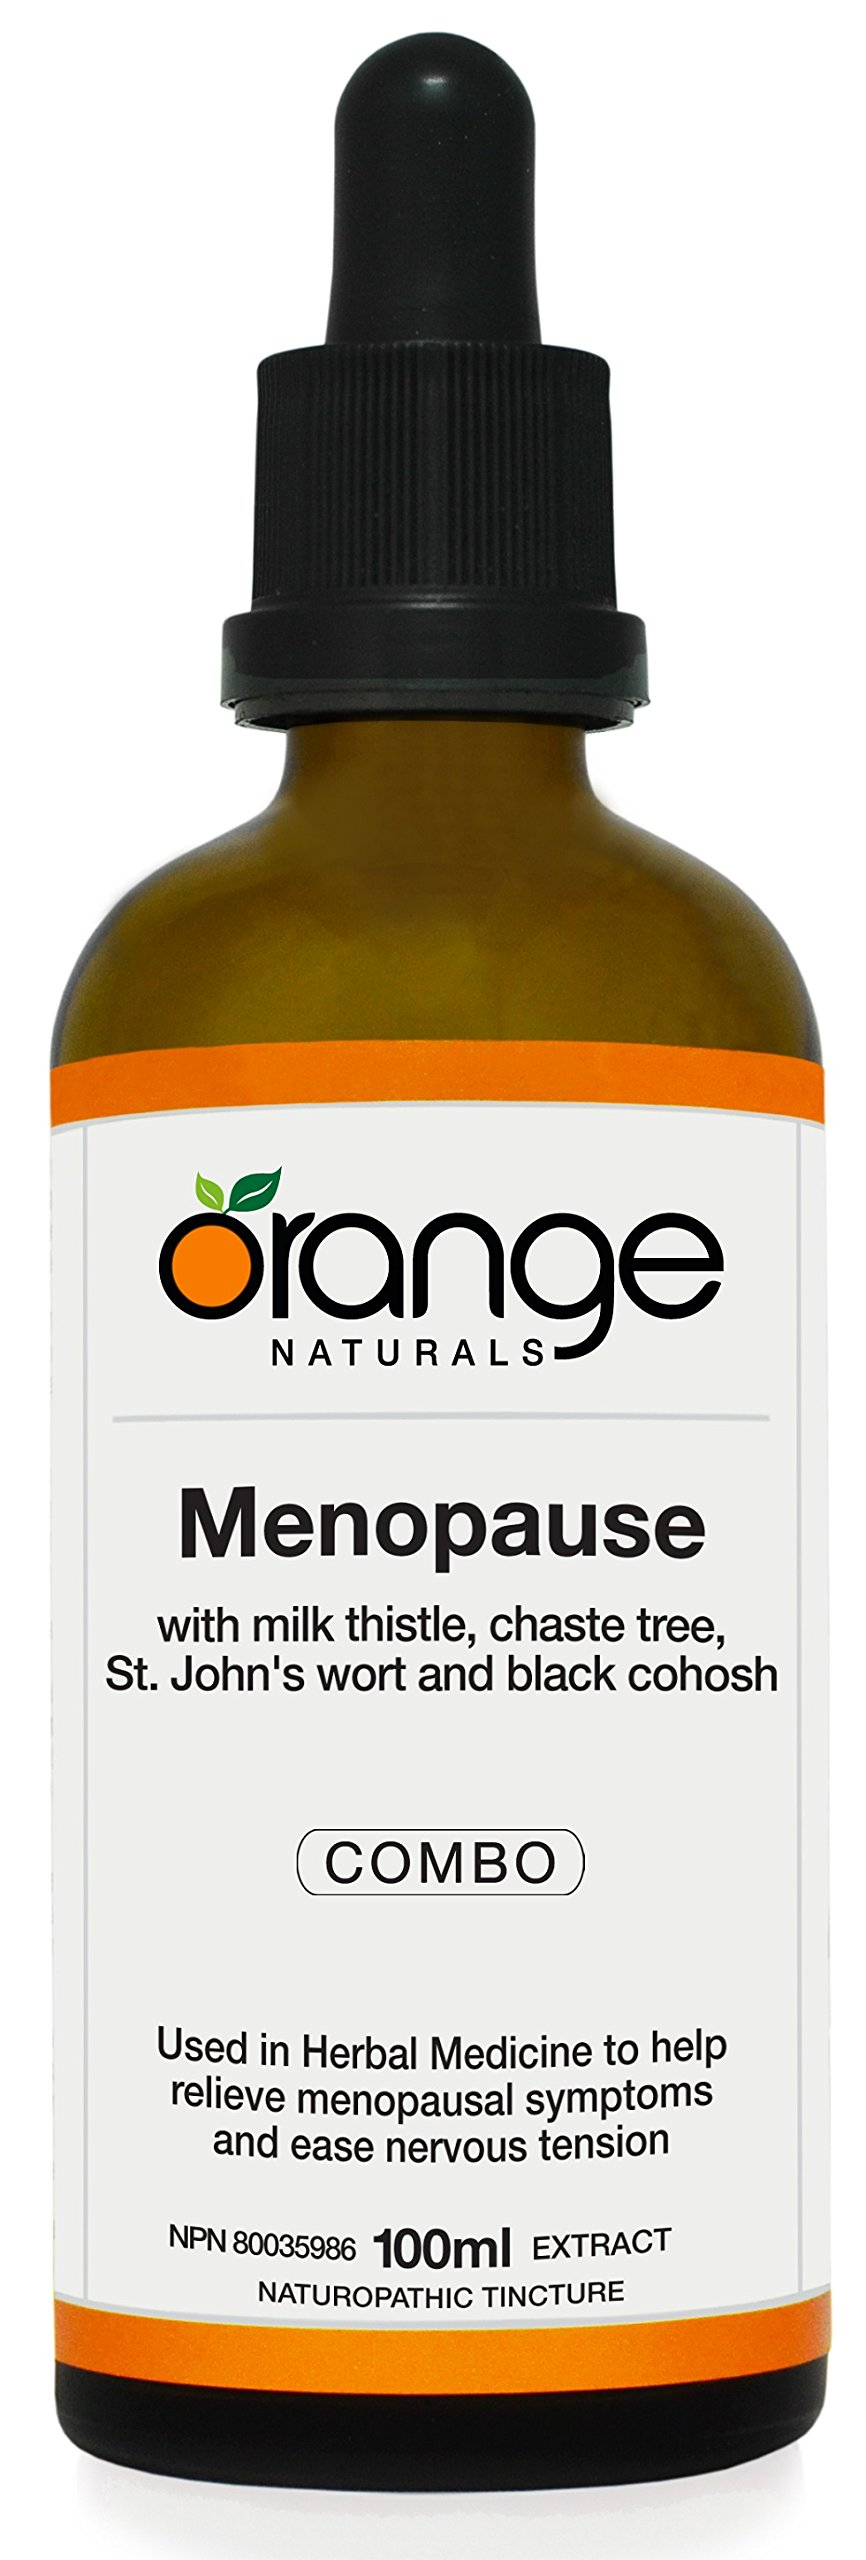 Orange Naturals Menopause Tincture, 3.38 Fluid Ounce